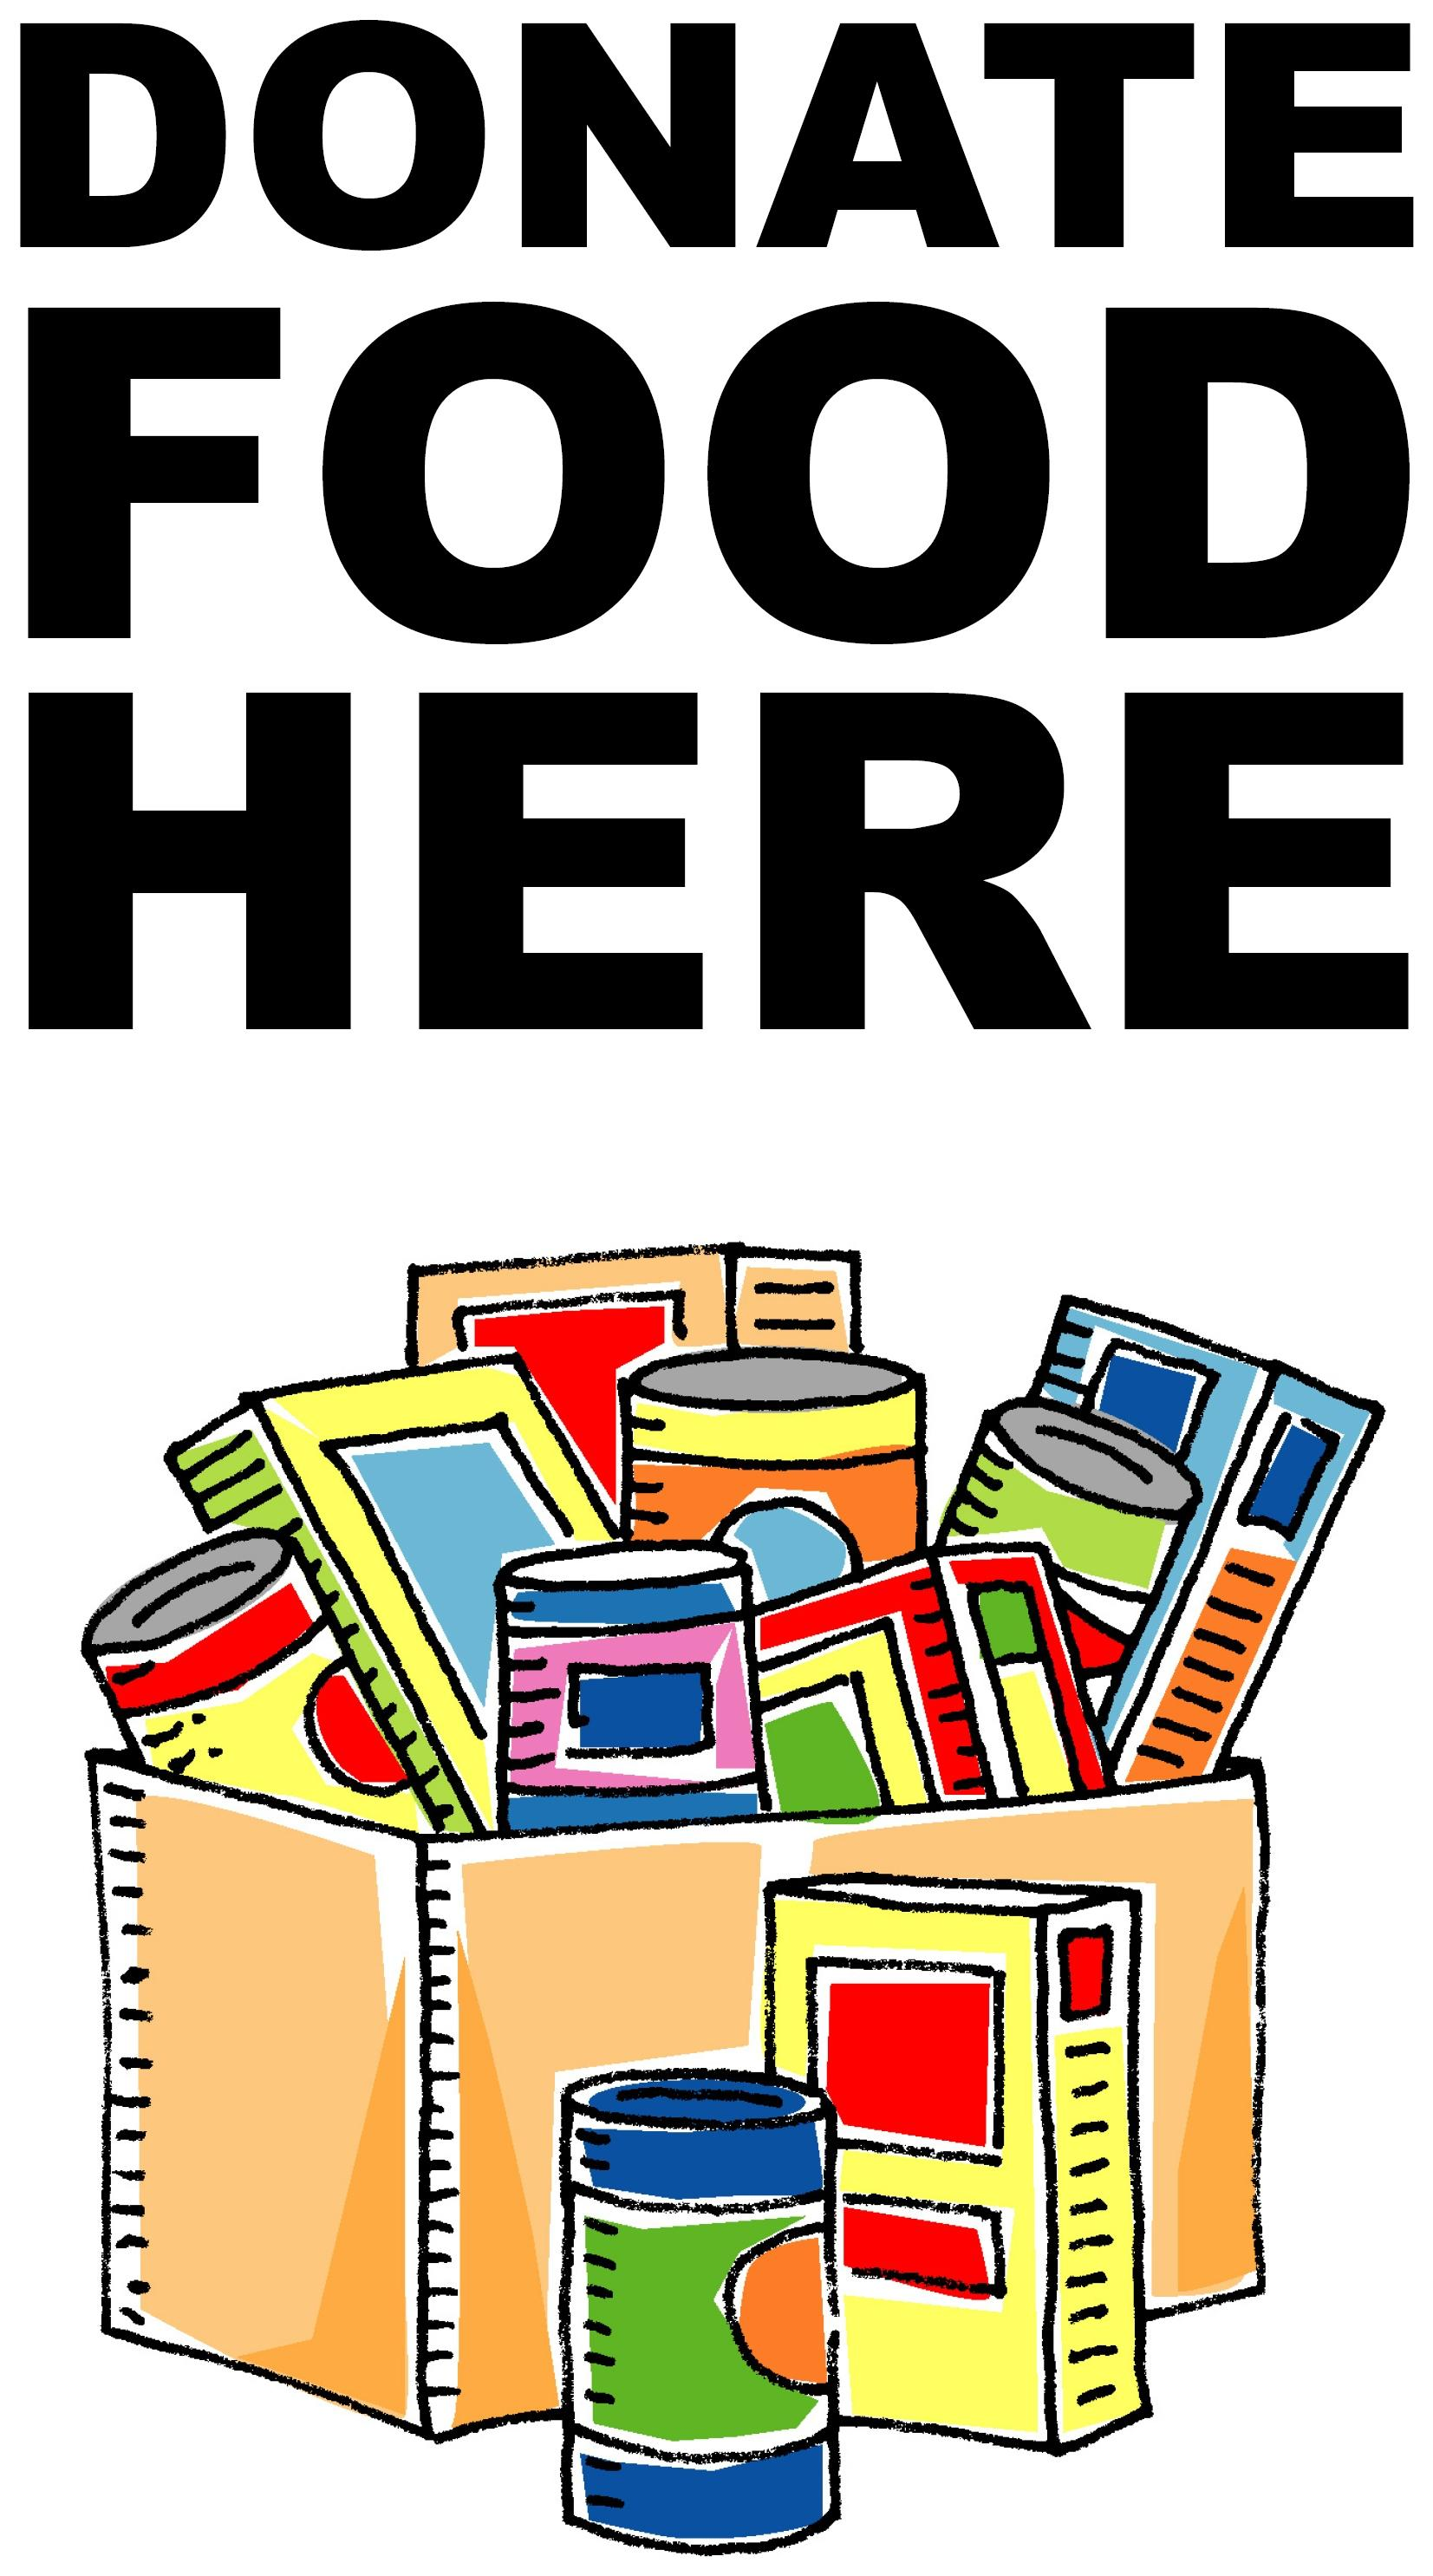 Canned Food Drive Slogans Can Food Drive Clip Art